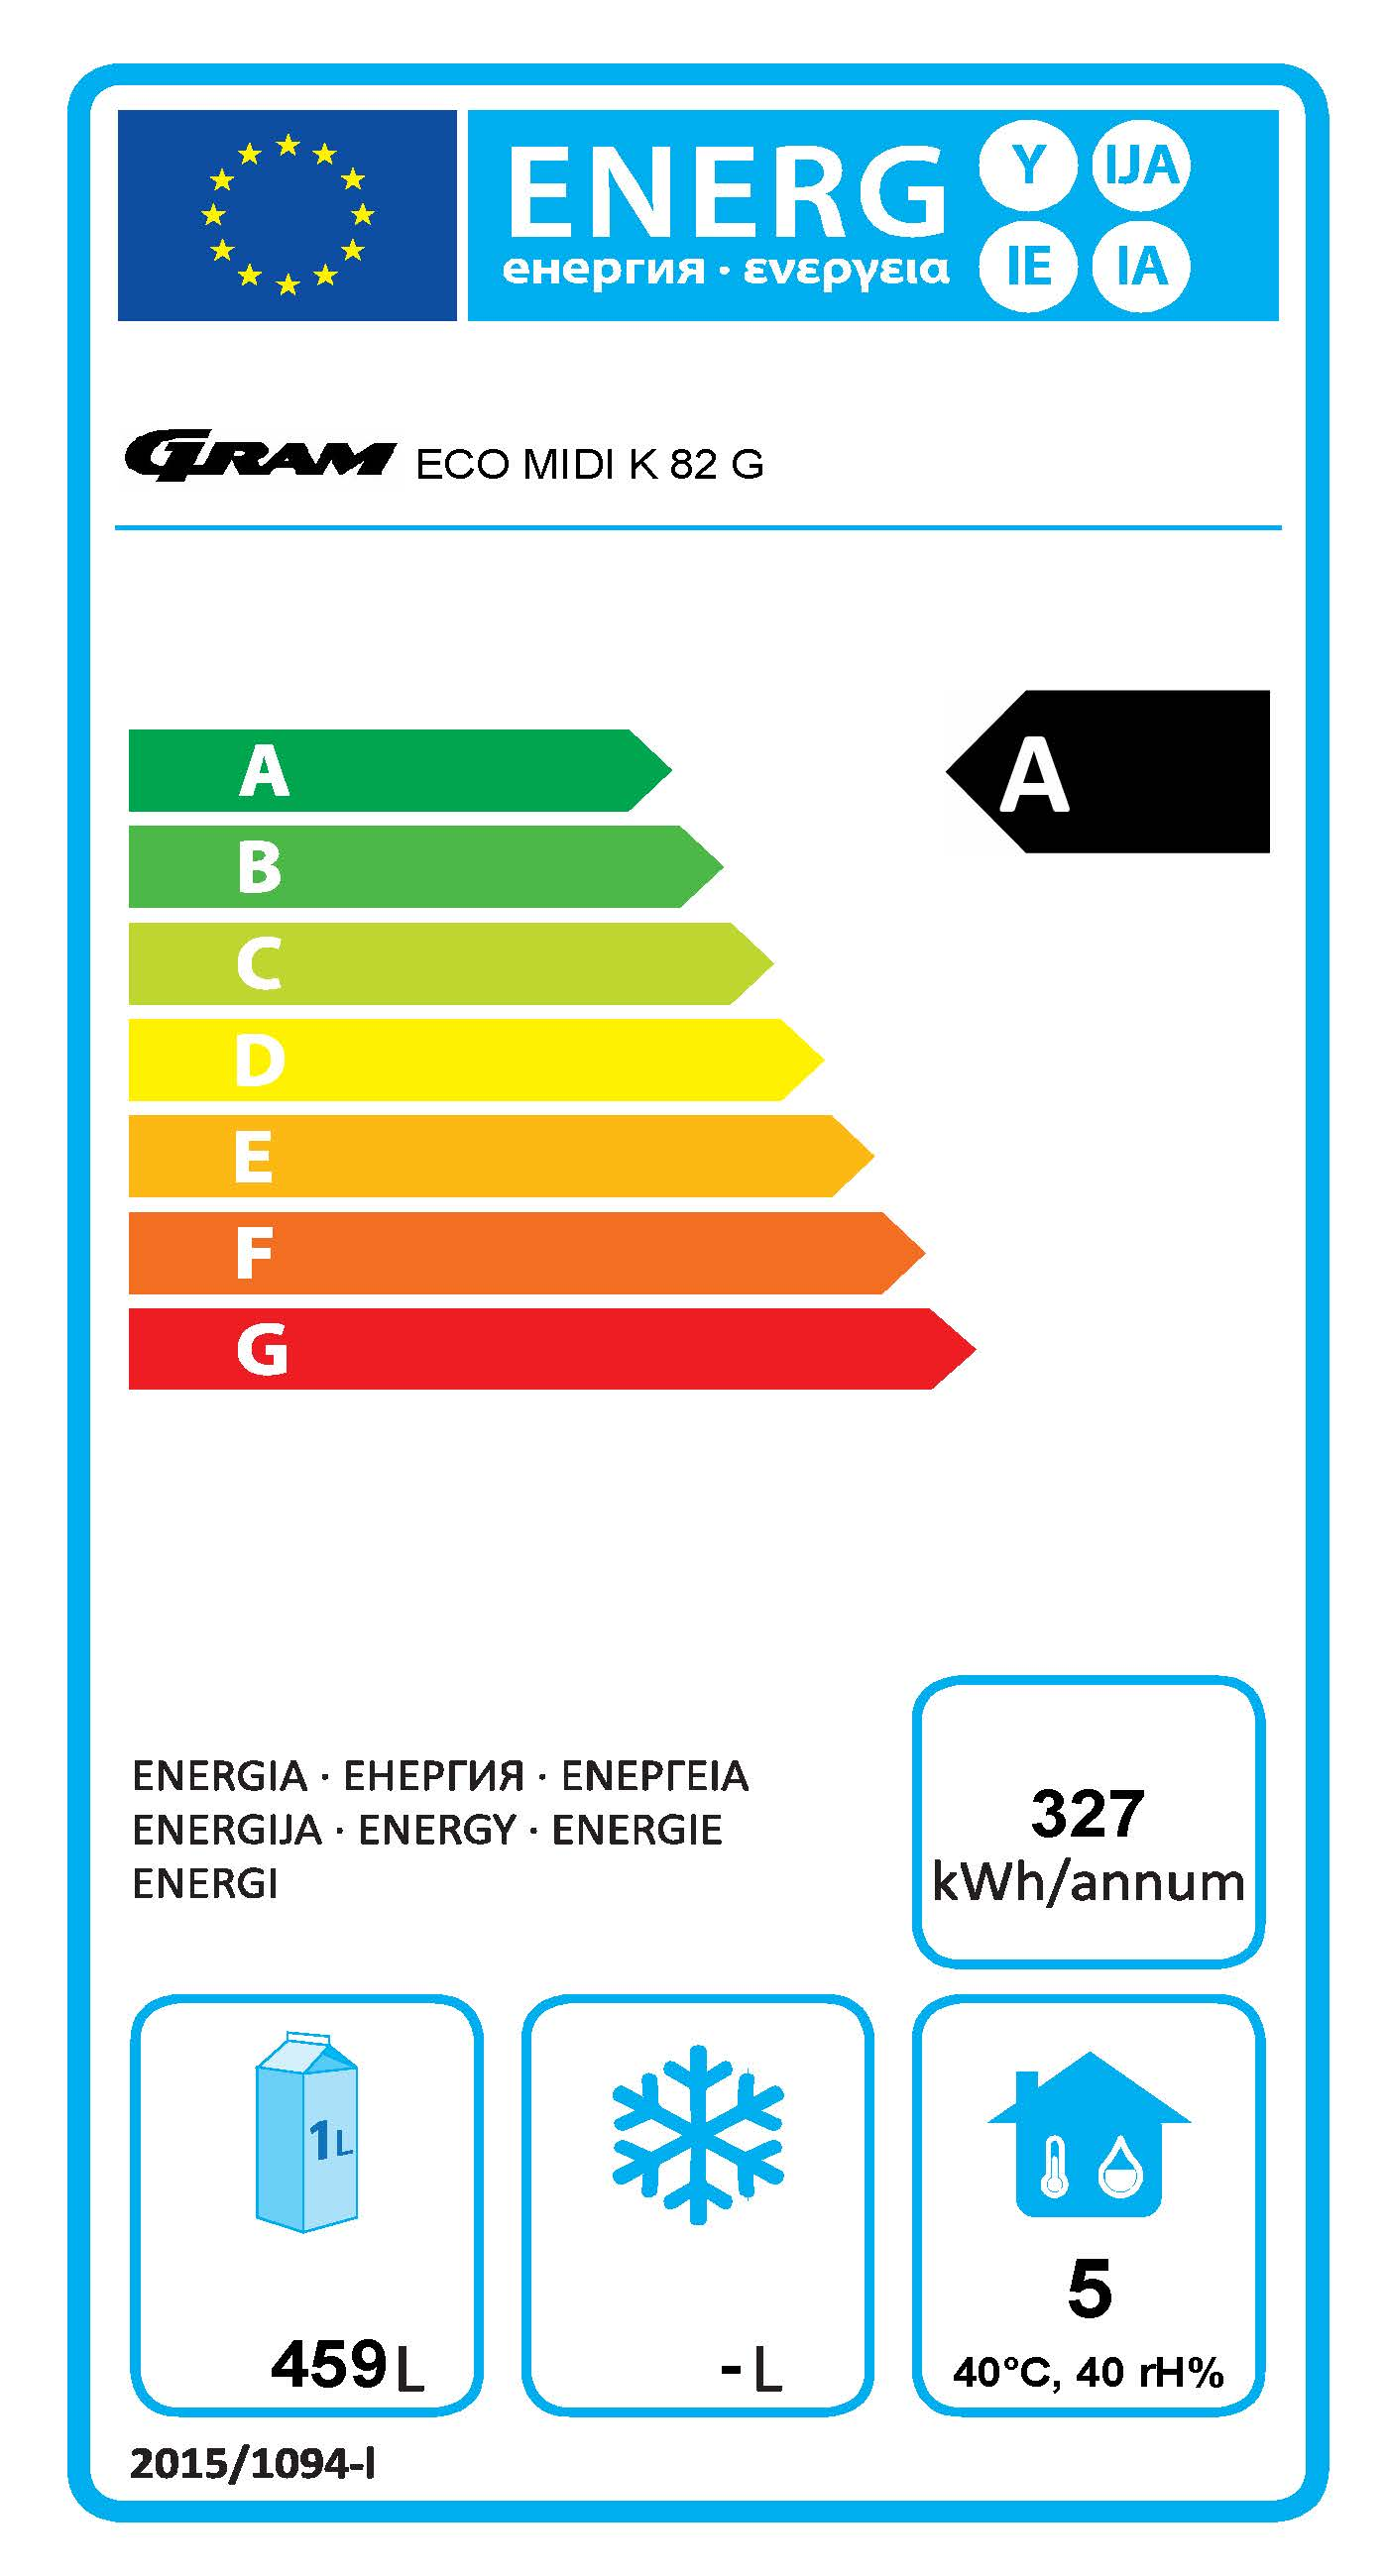 ECO MIDI K 82 LAG 4N 2/1 GN Upright Refrigerator Energy Rating